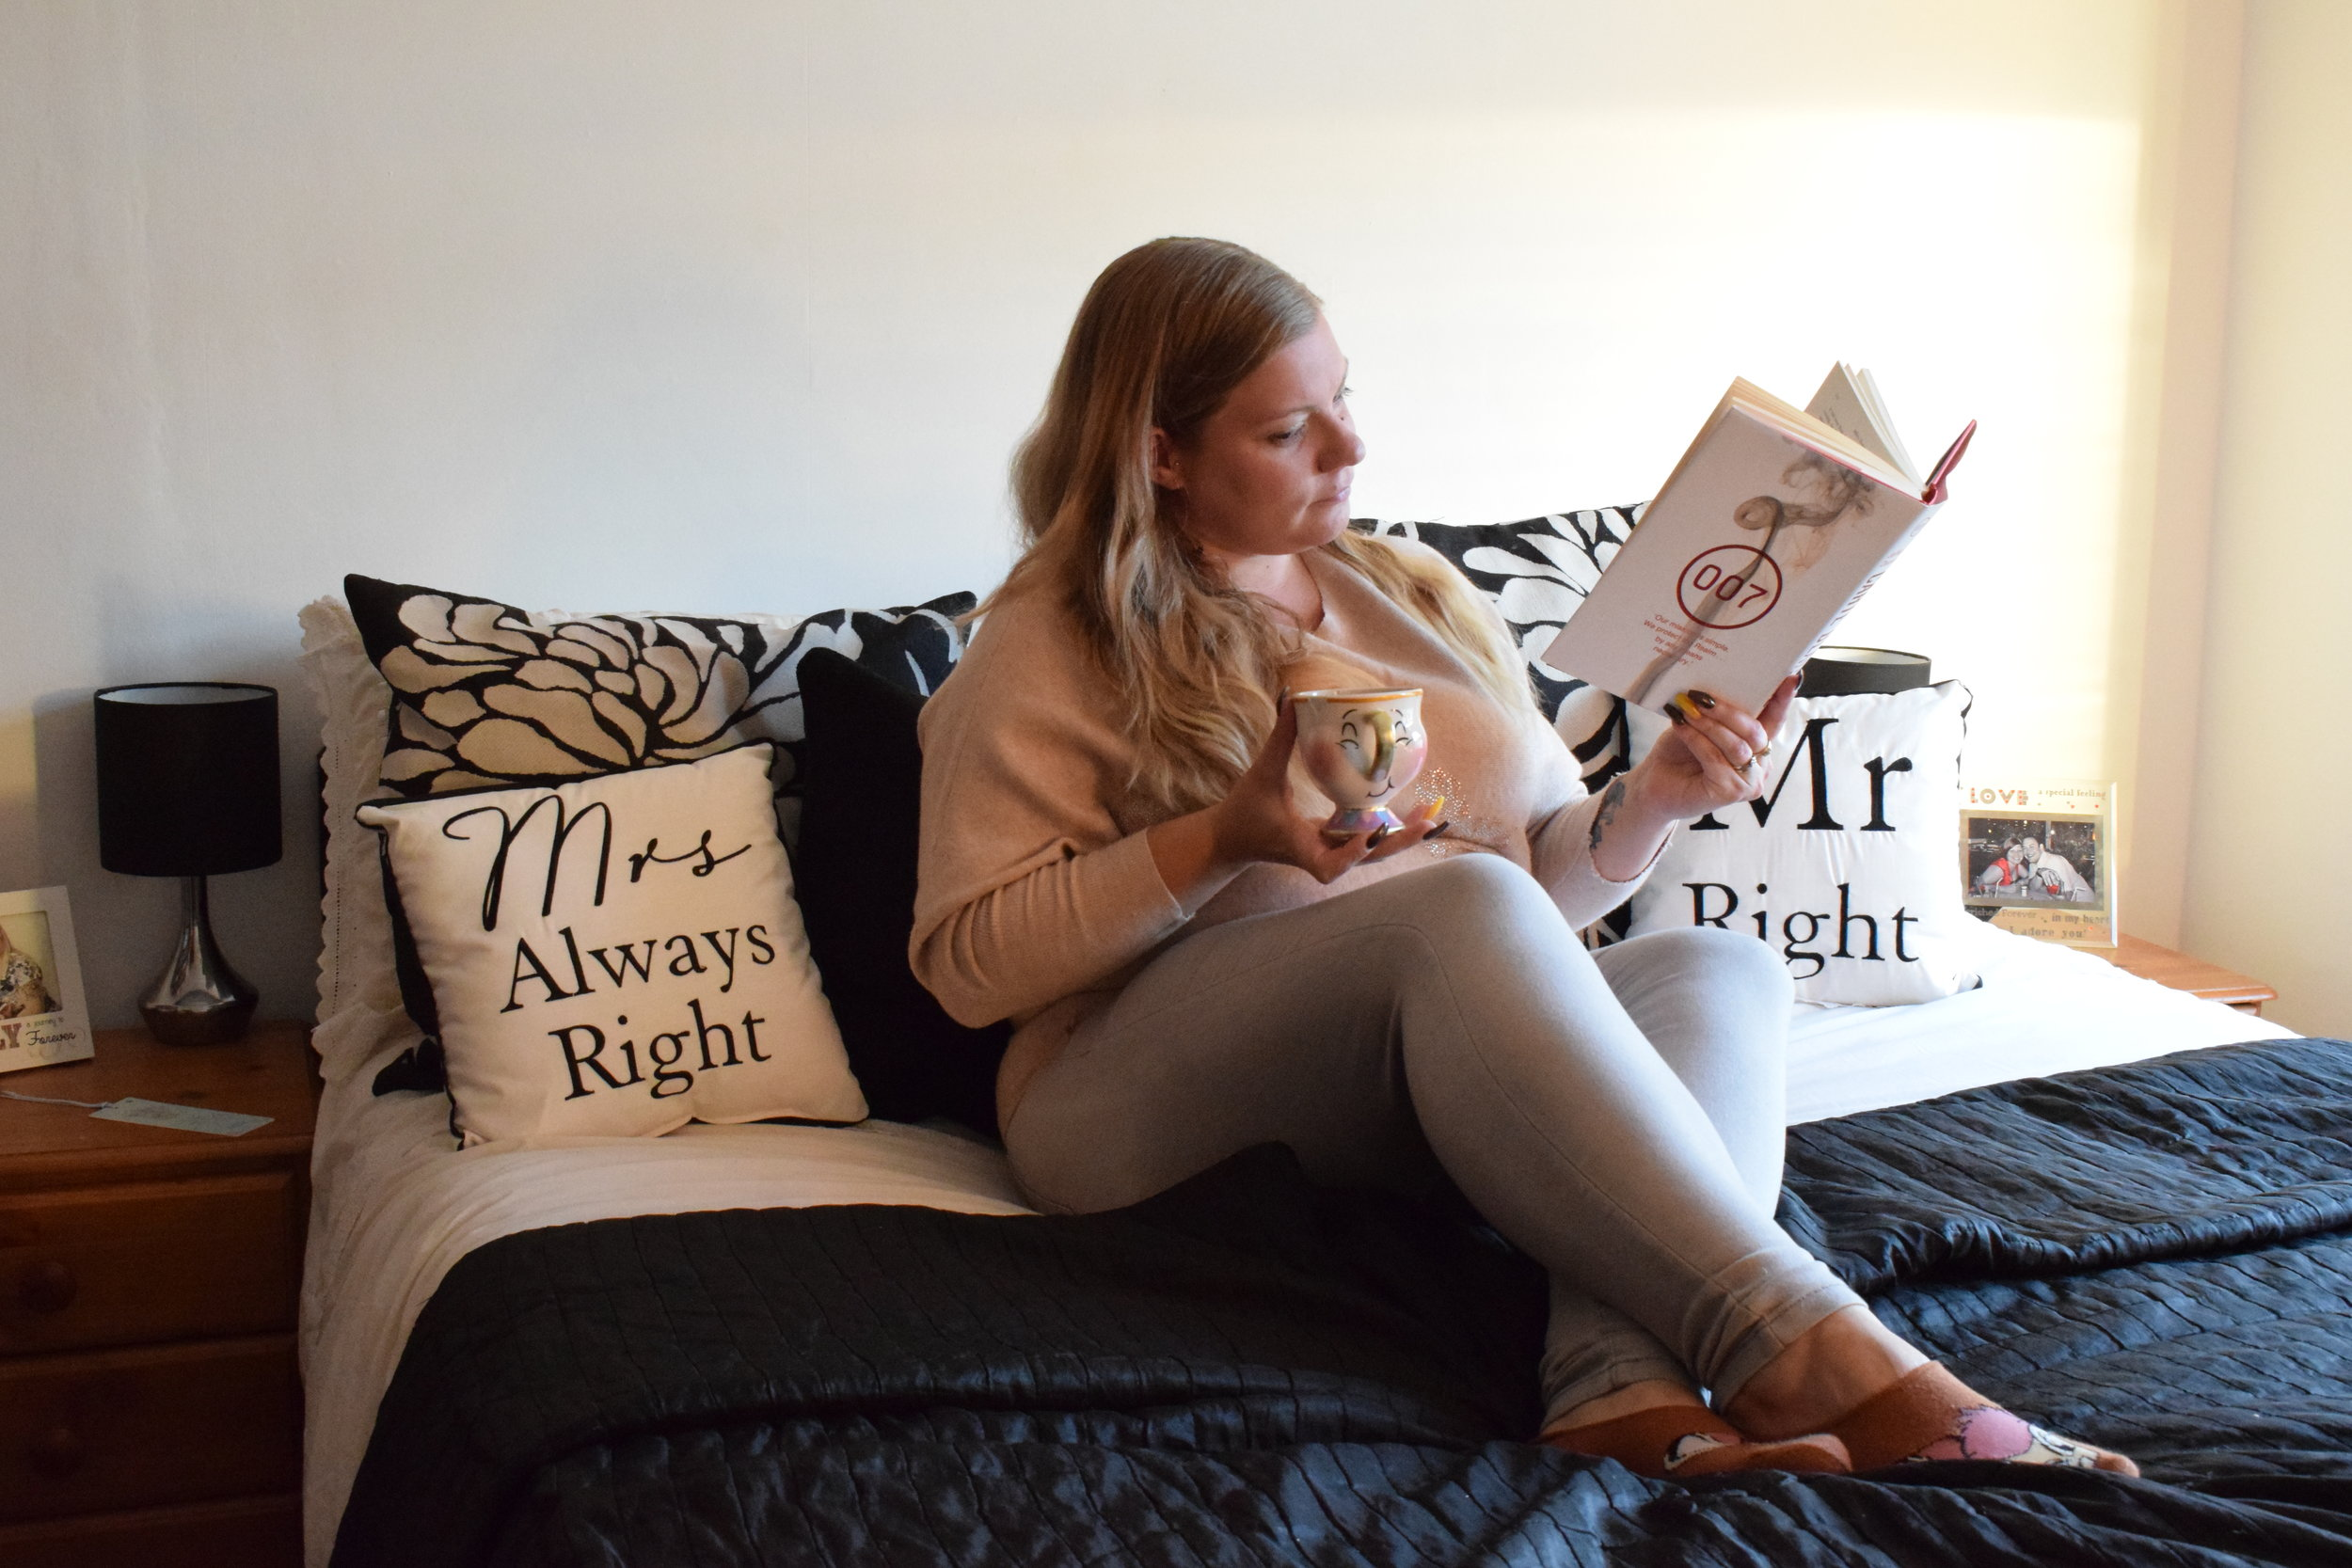 Mr Right and Mrs Always Right Cushions from Find Me A Gift Me Becoming Mum's Christmas Gift Ideas for Her